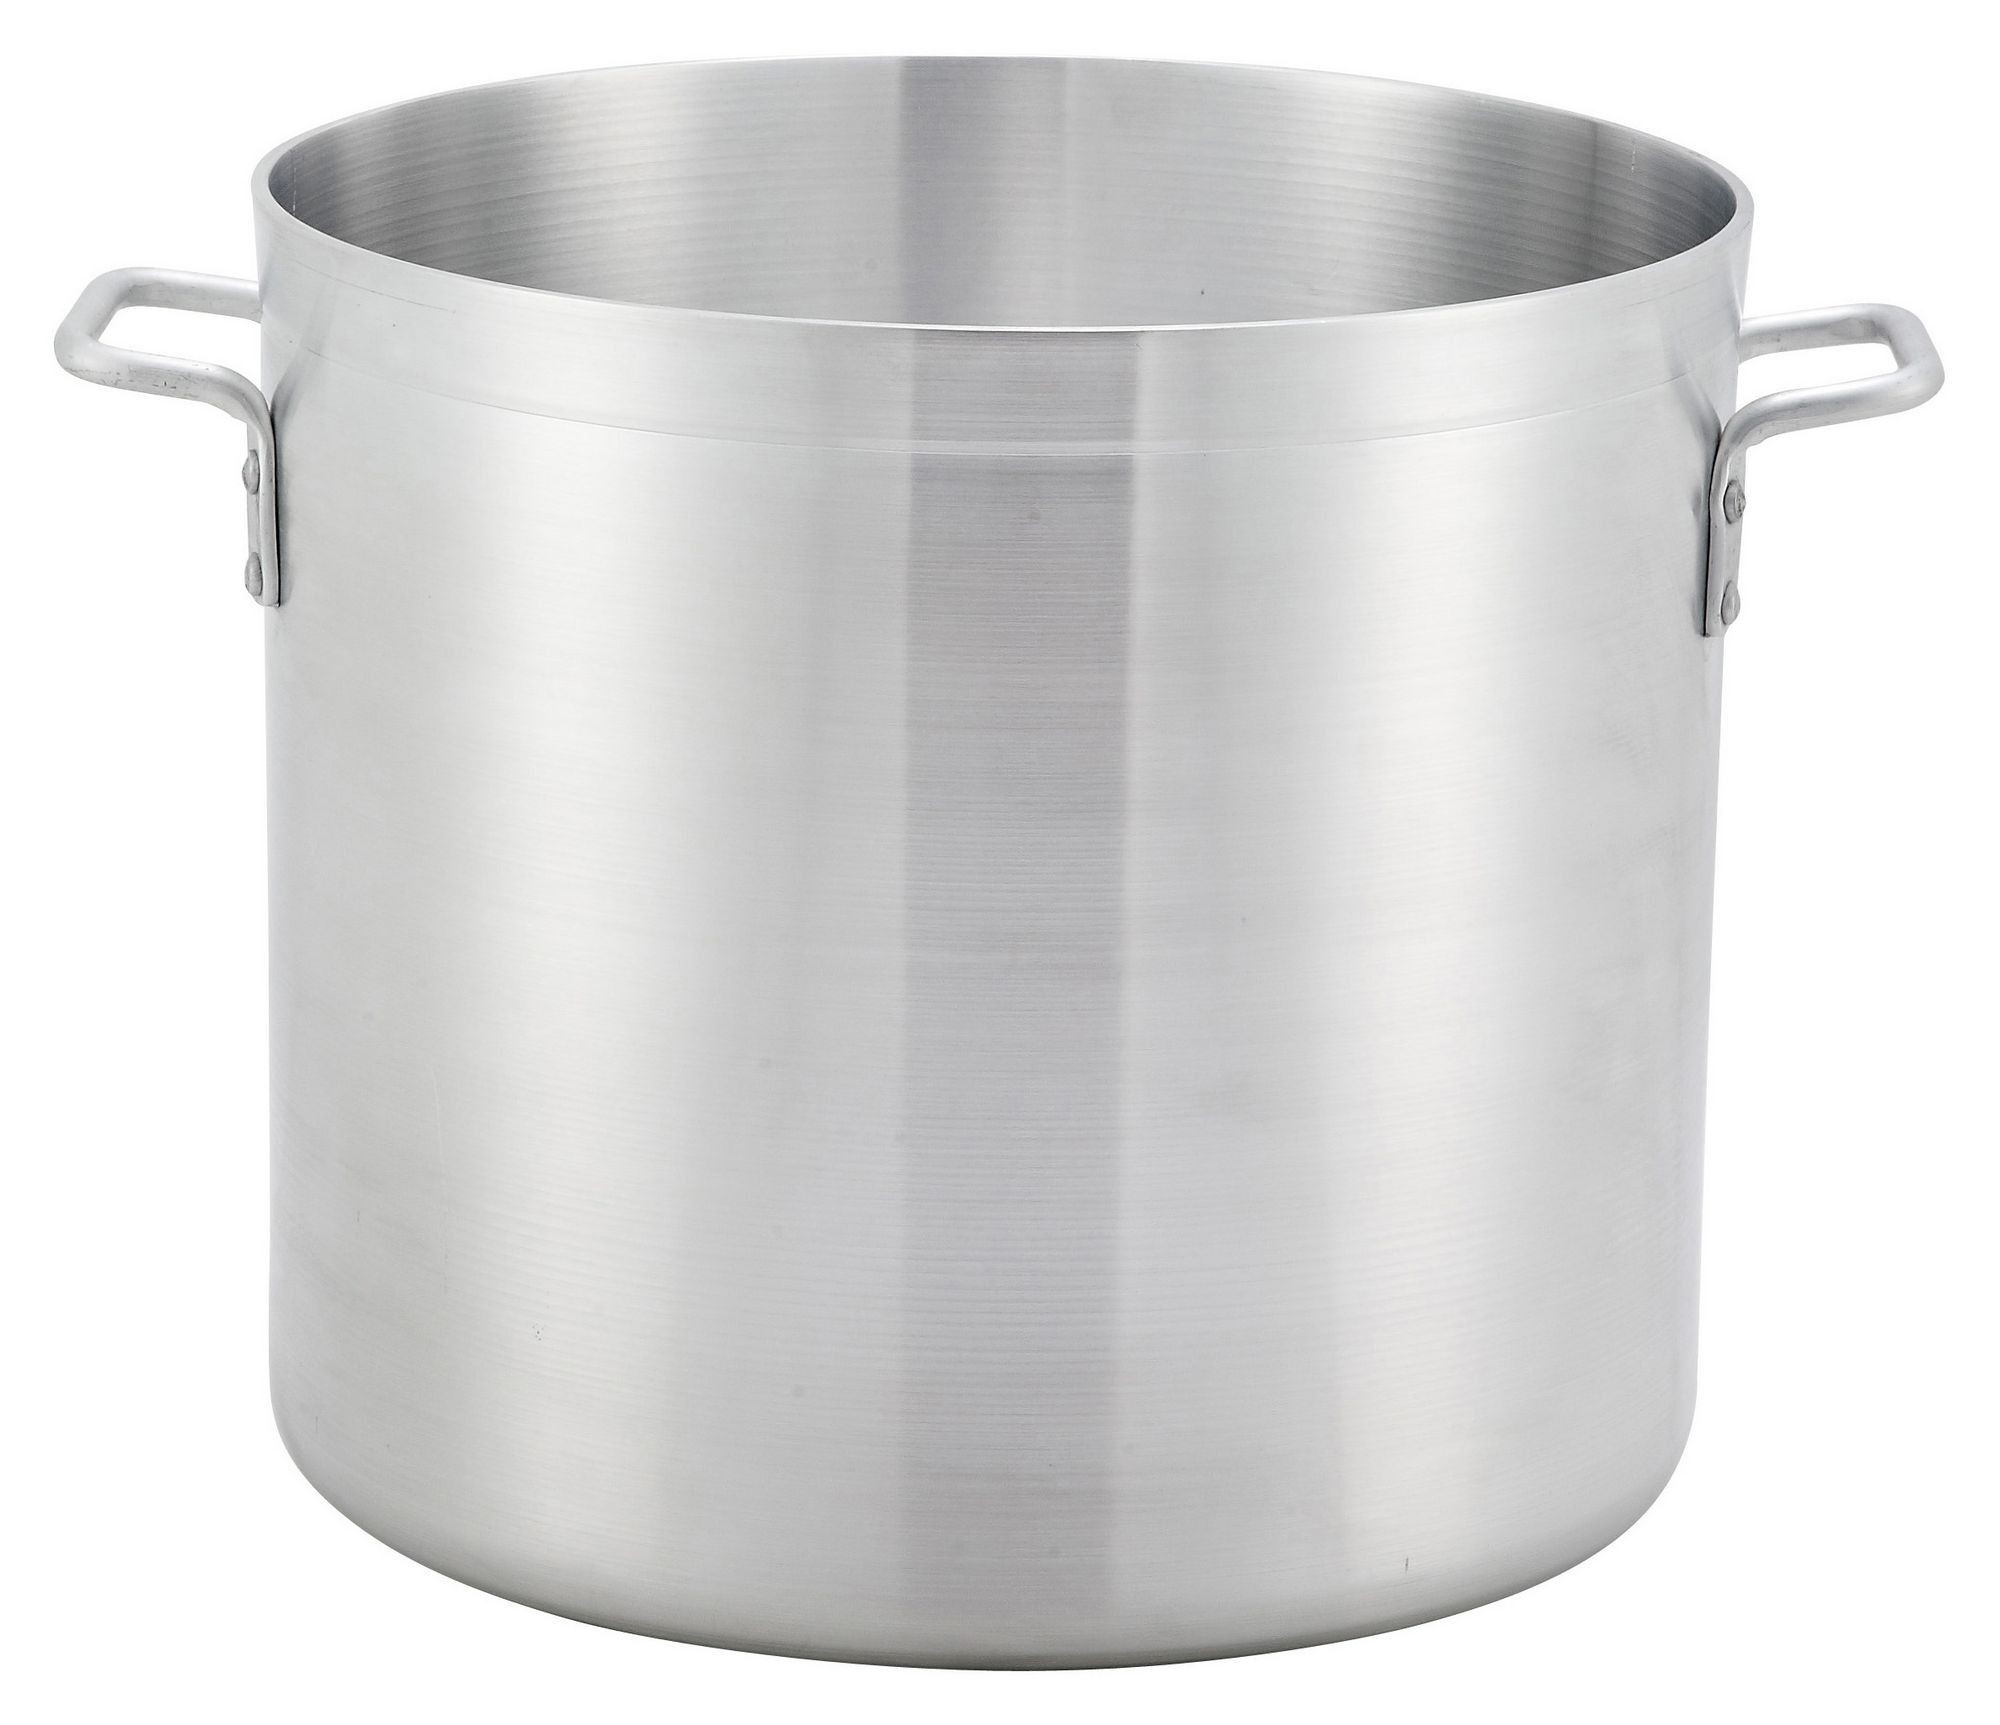 Aluminum 100-Qt Stock Pot